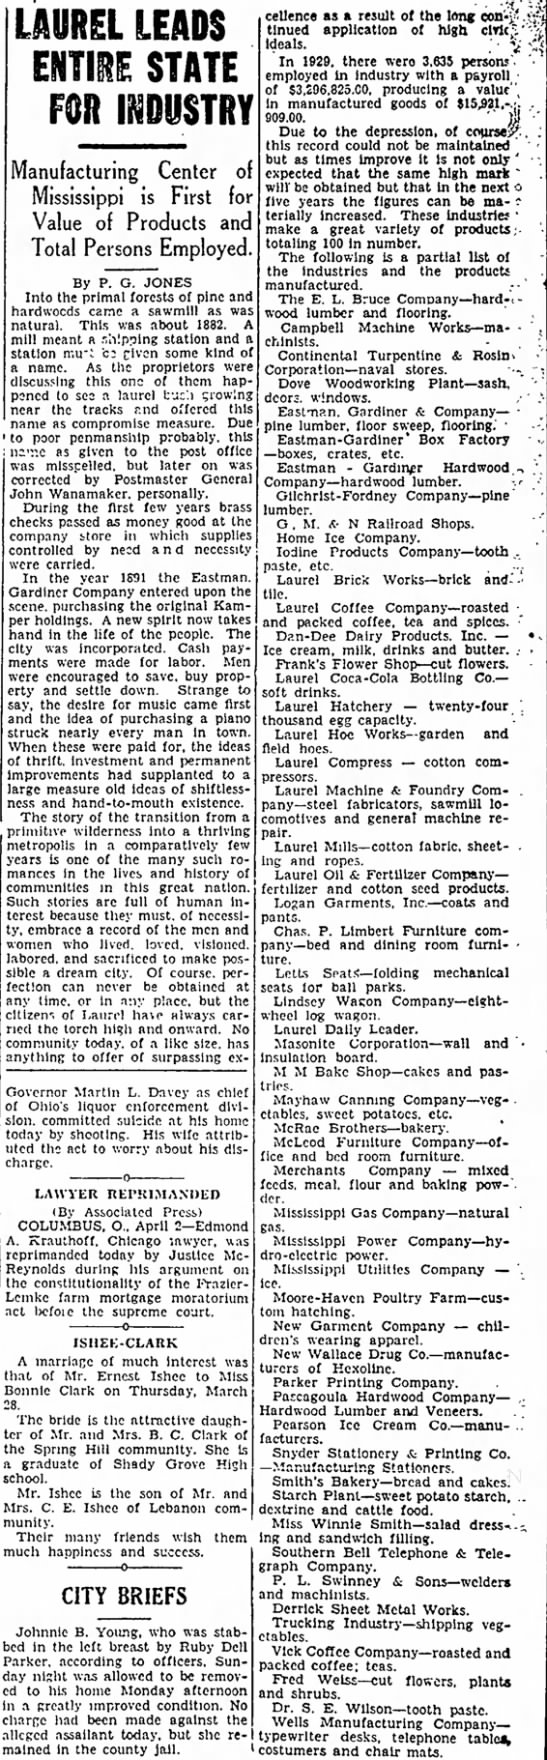 lul leads st. industry, 2 april 1935 p. 11, leader call -